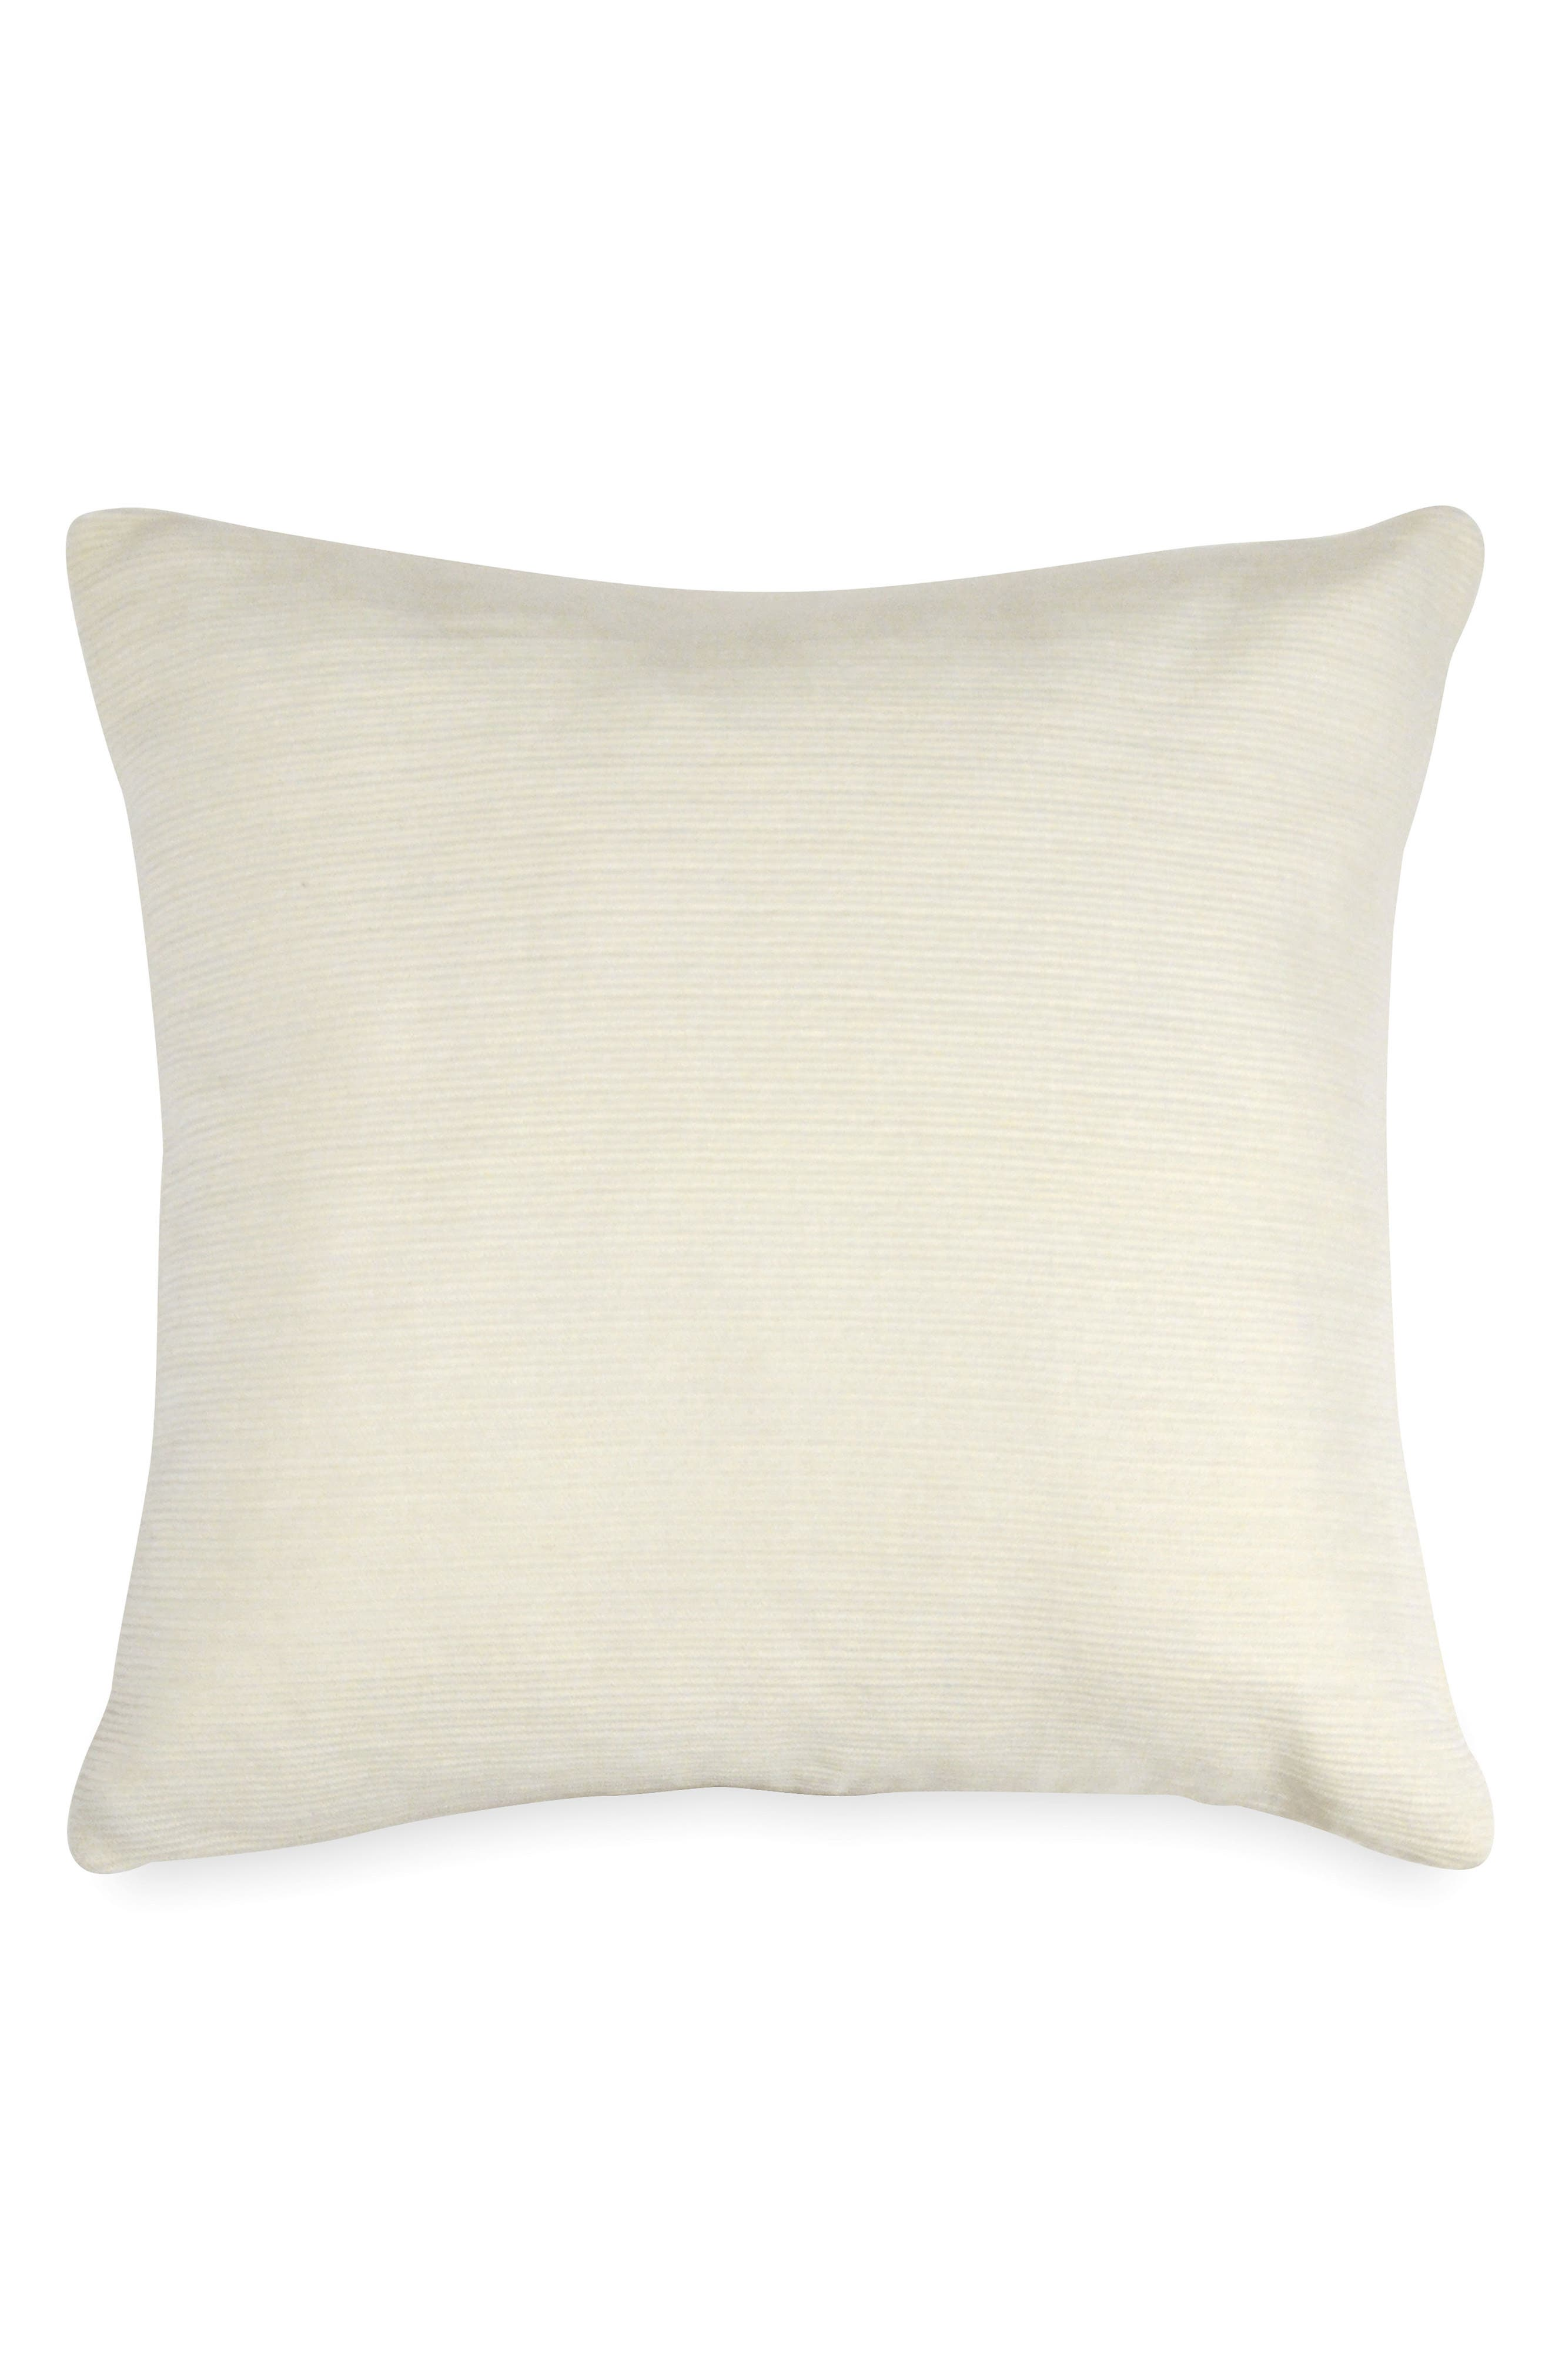 DKNY Motion Knit Accent Pillow | Nordstrom